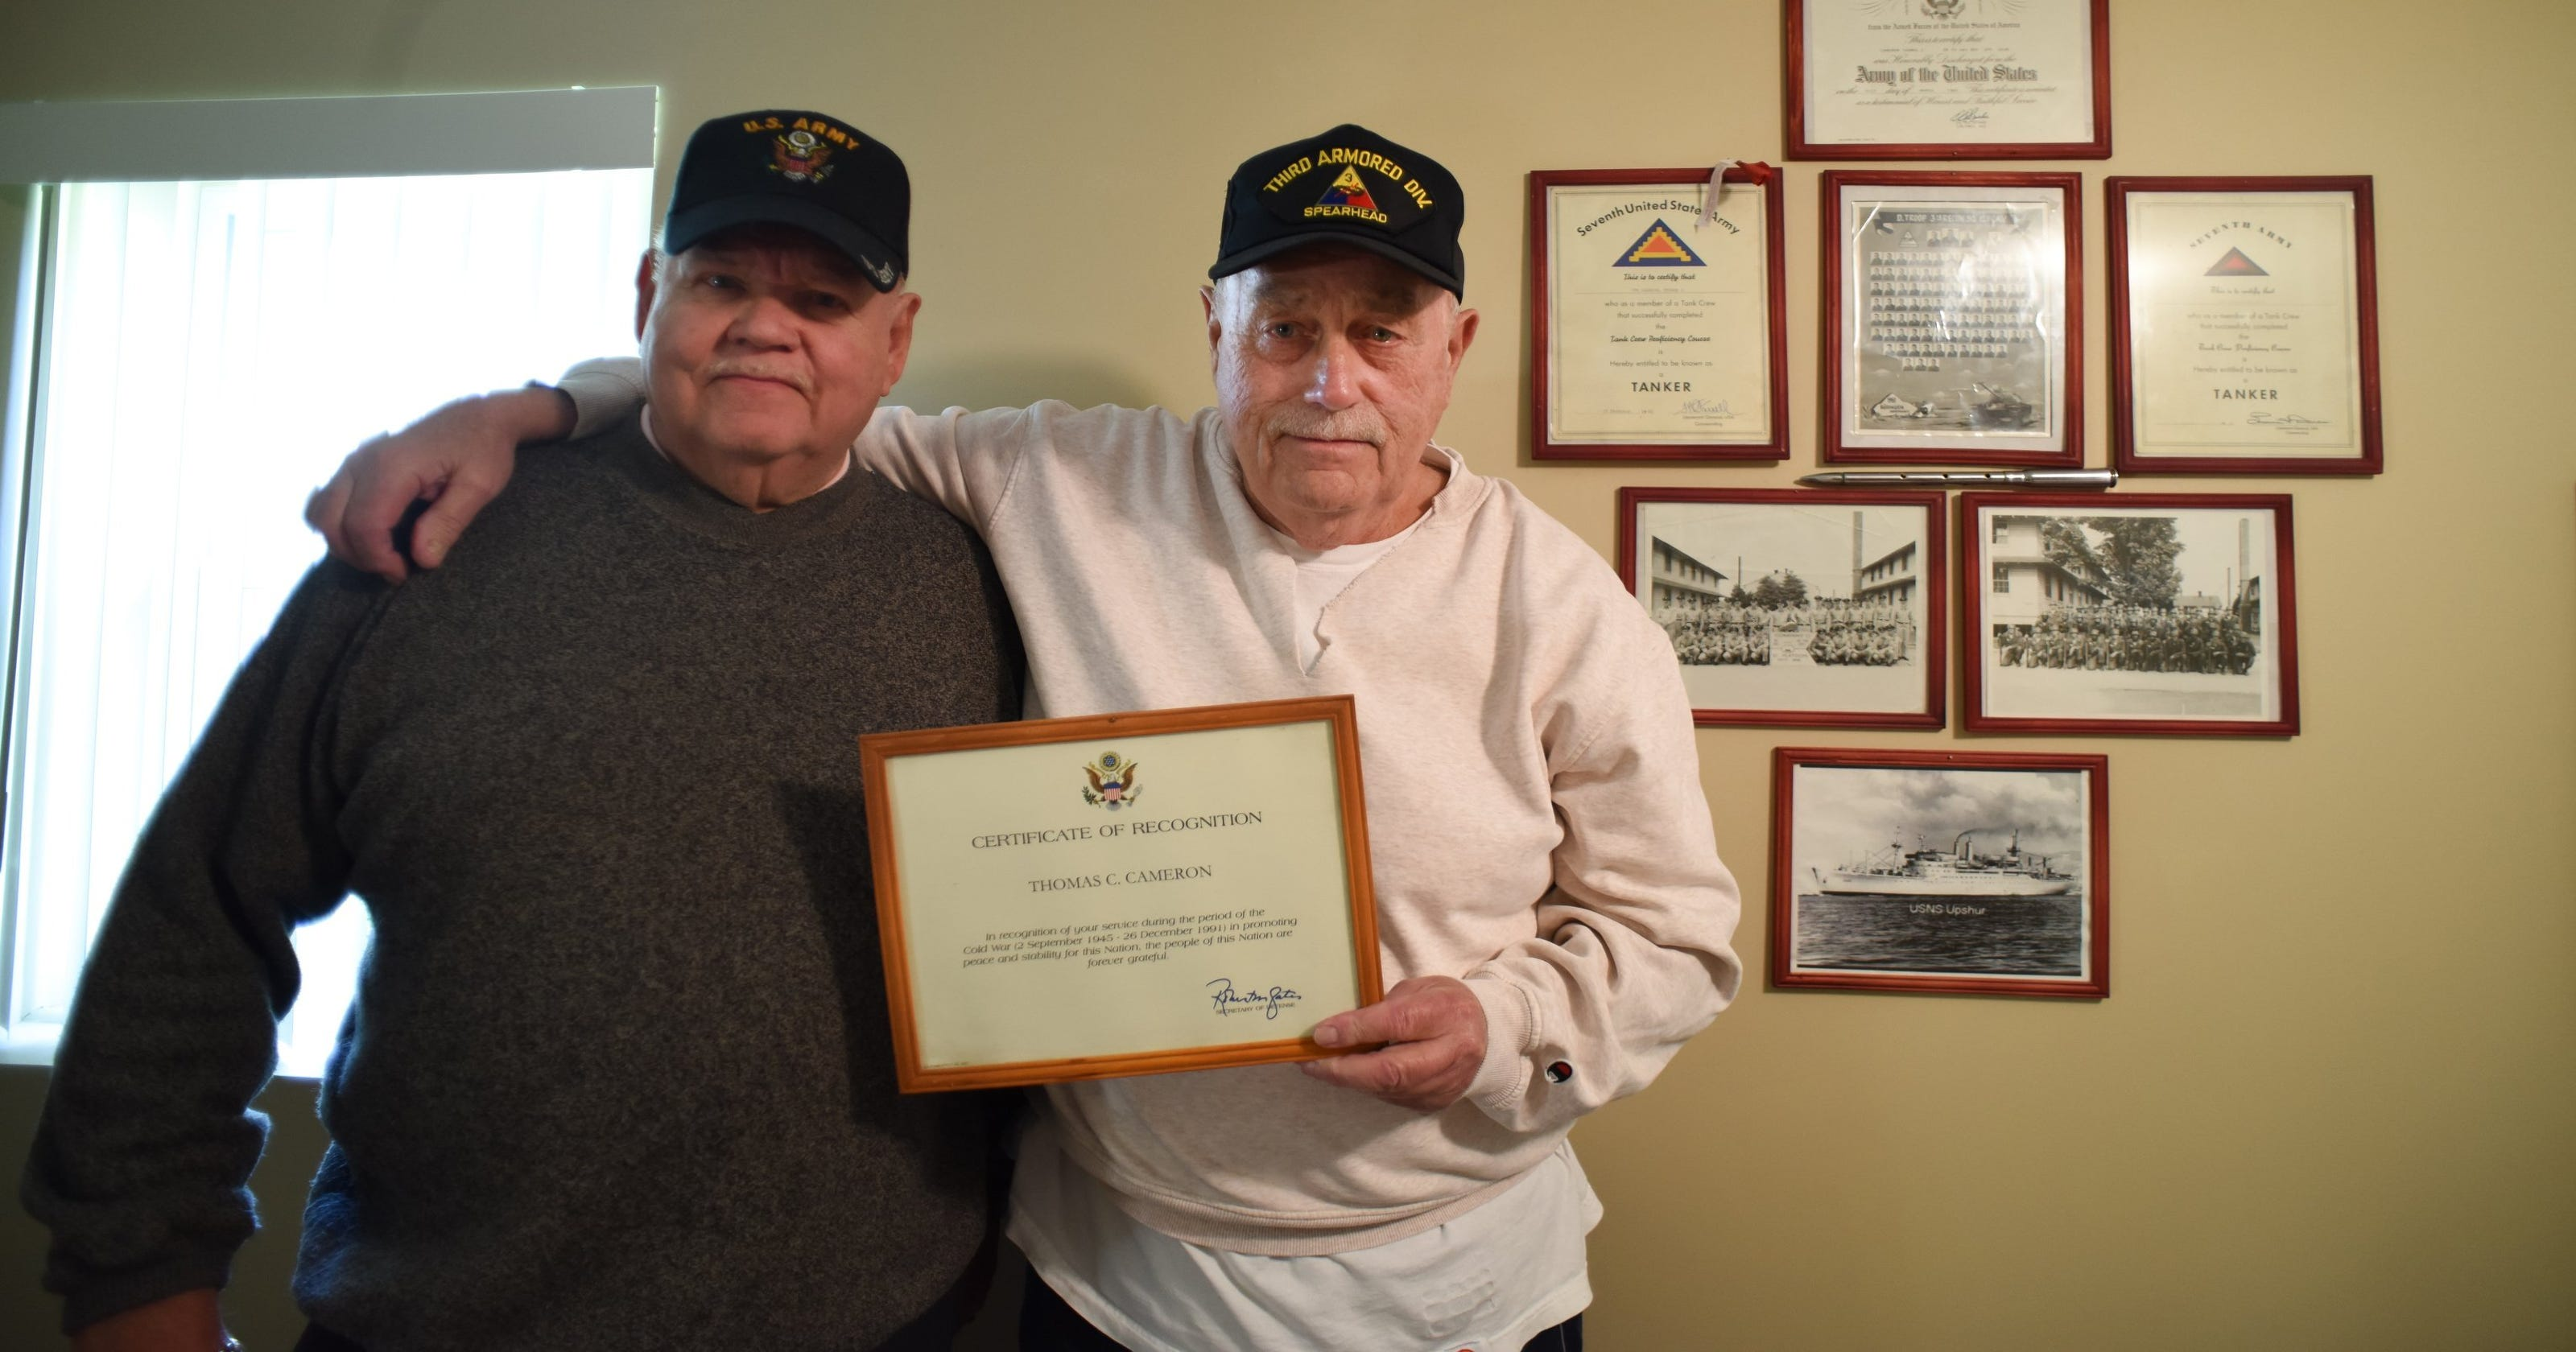 Cold War veterans seek recognition for their service